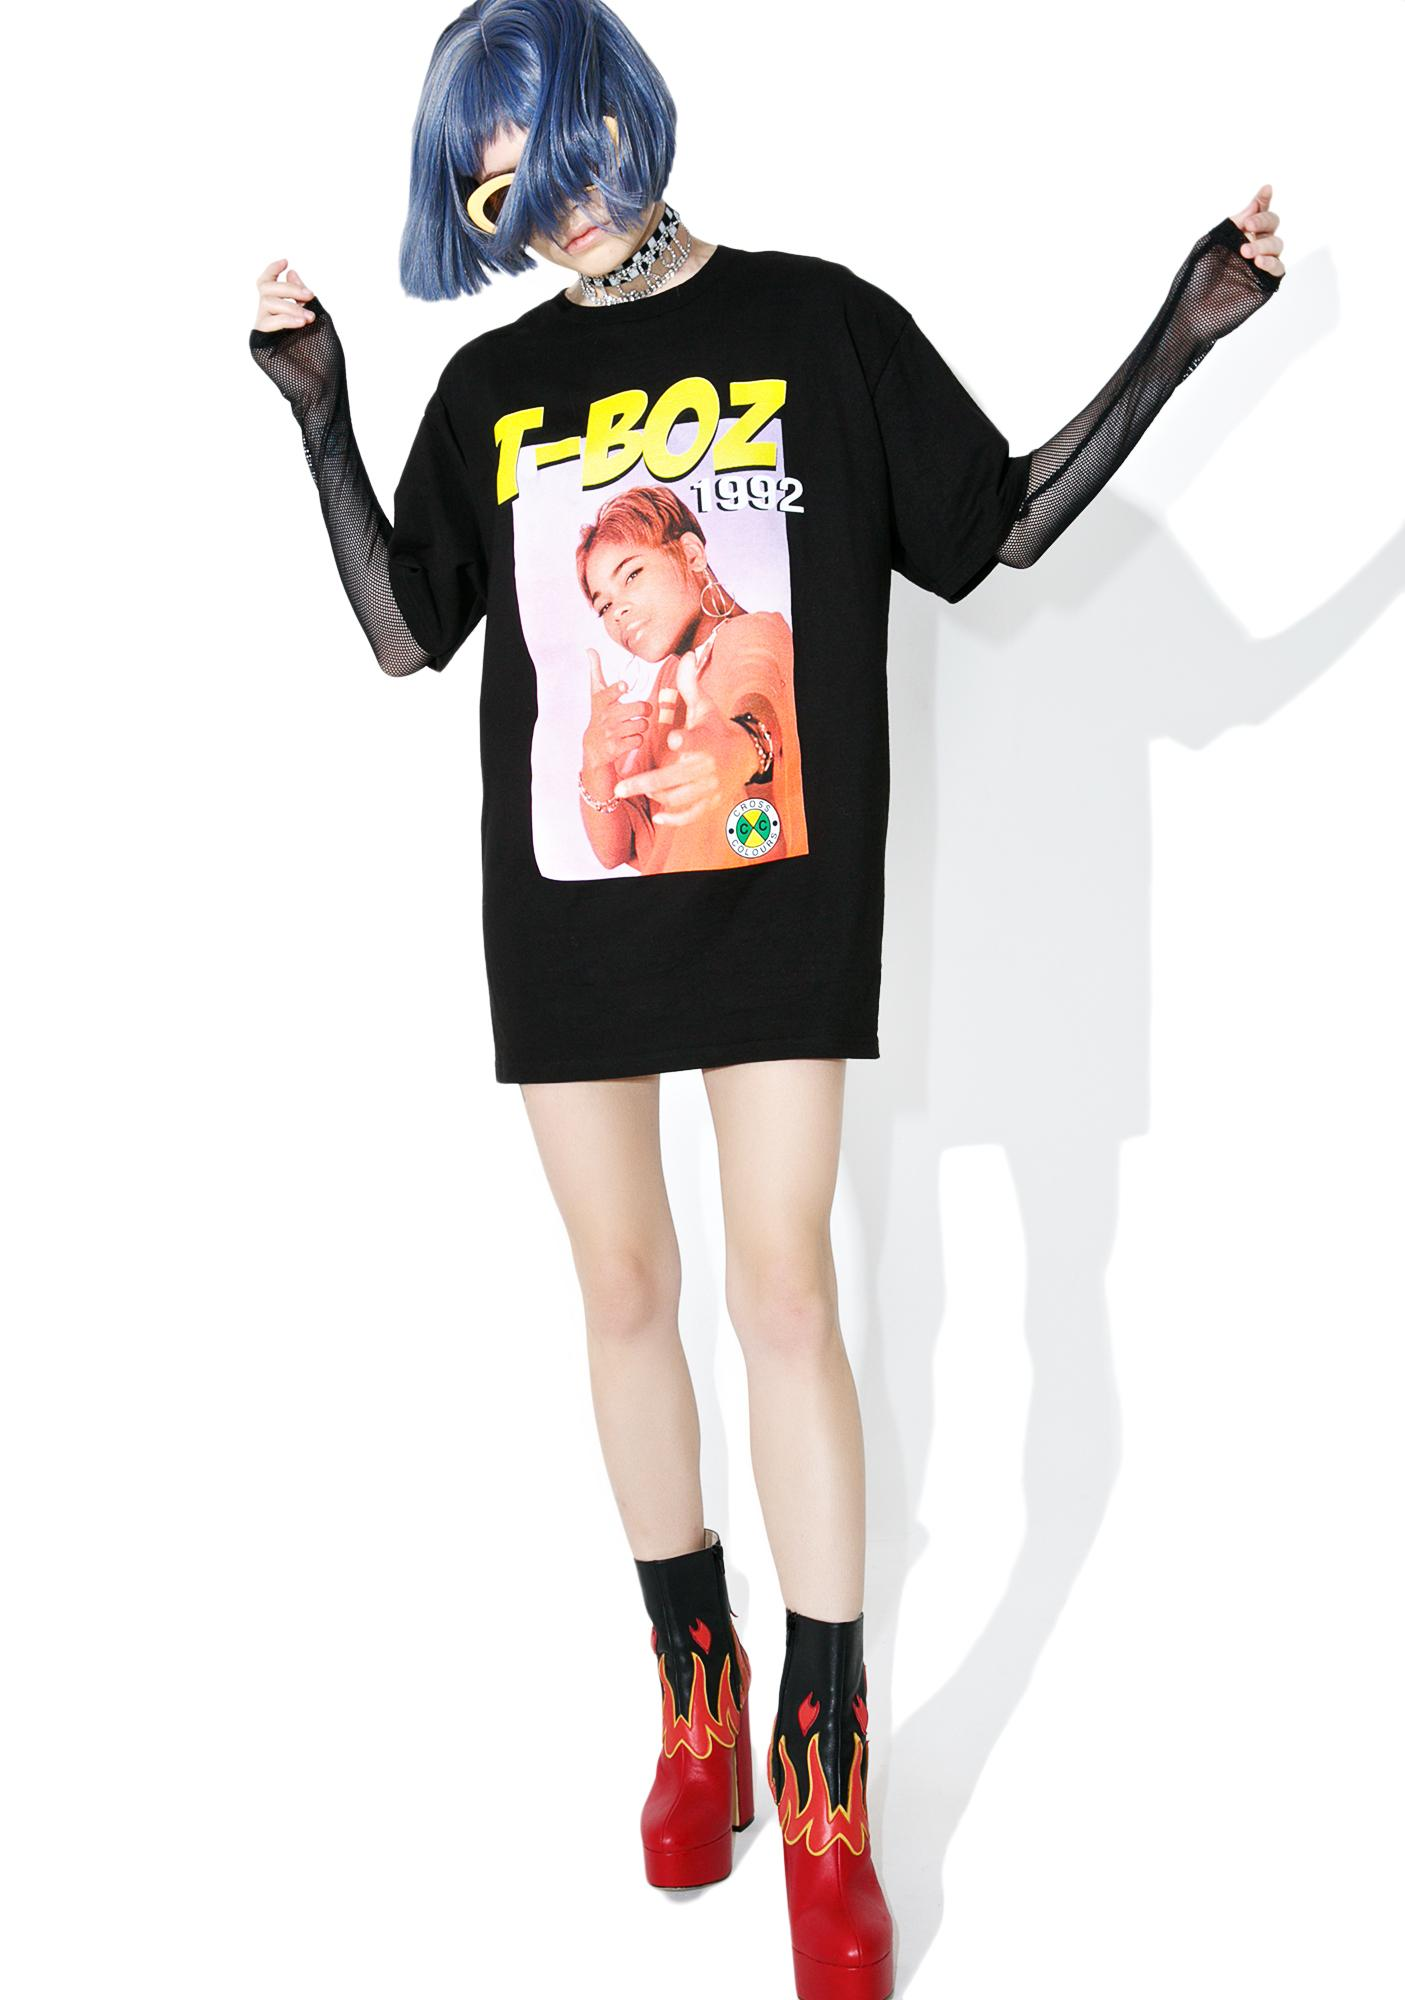 Cross Colours TLC T-Boz T-Shirt